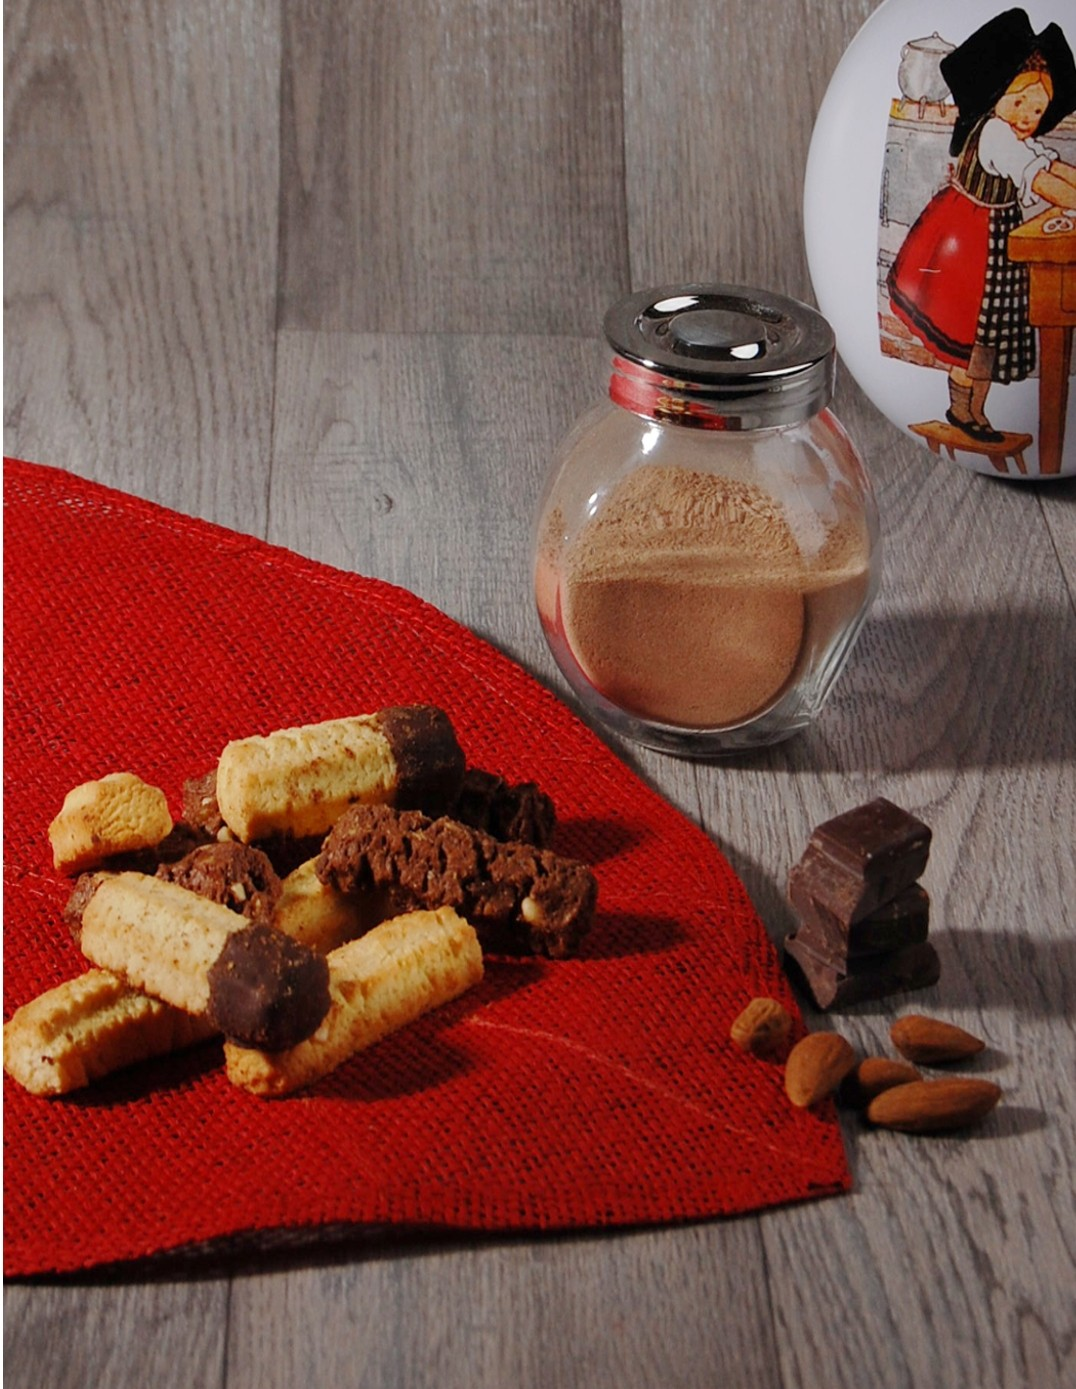 Uncle Hansi's Biscuit Factory: Spritz assortment